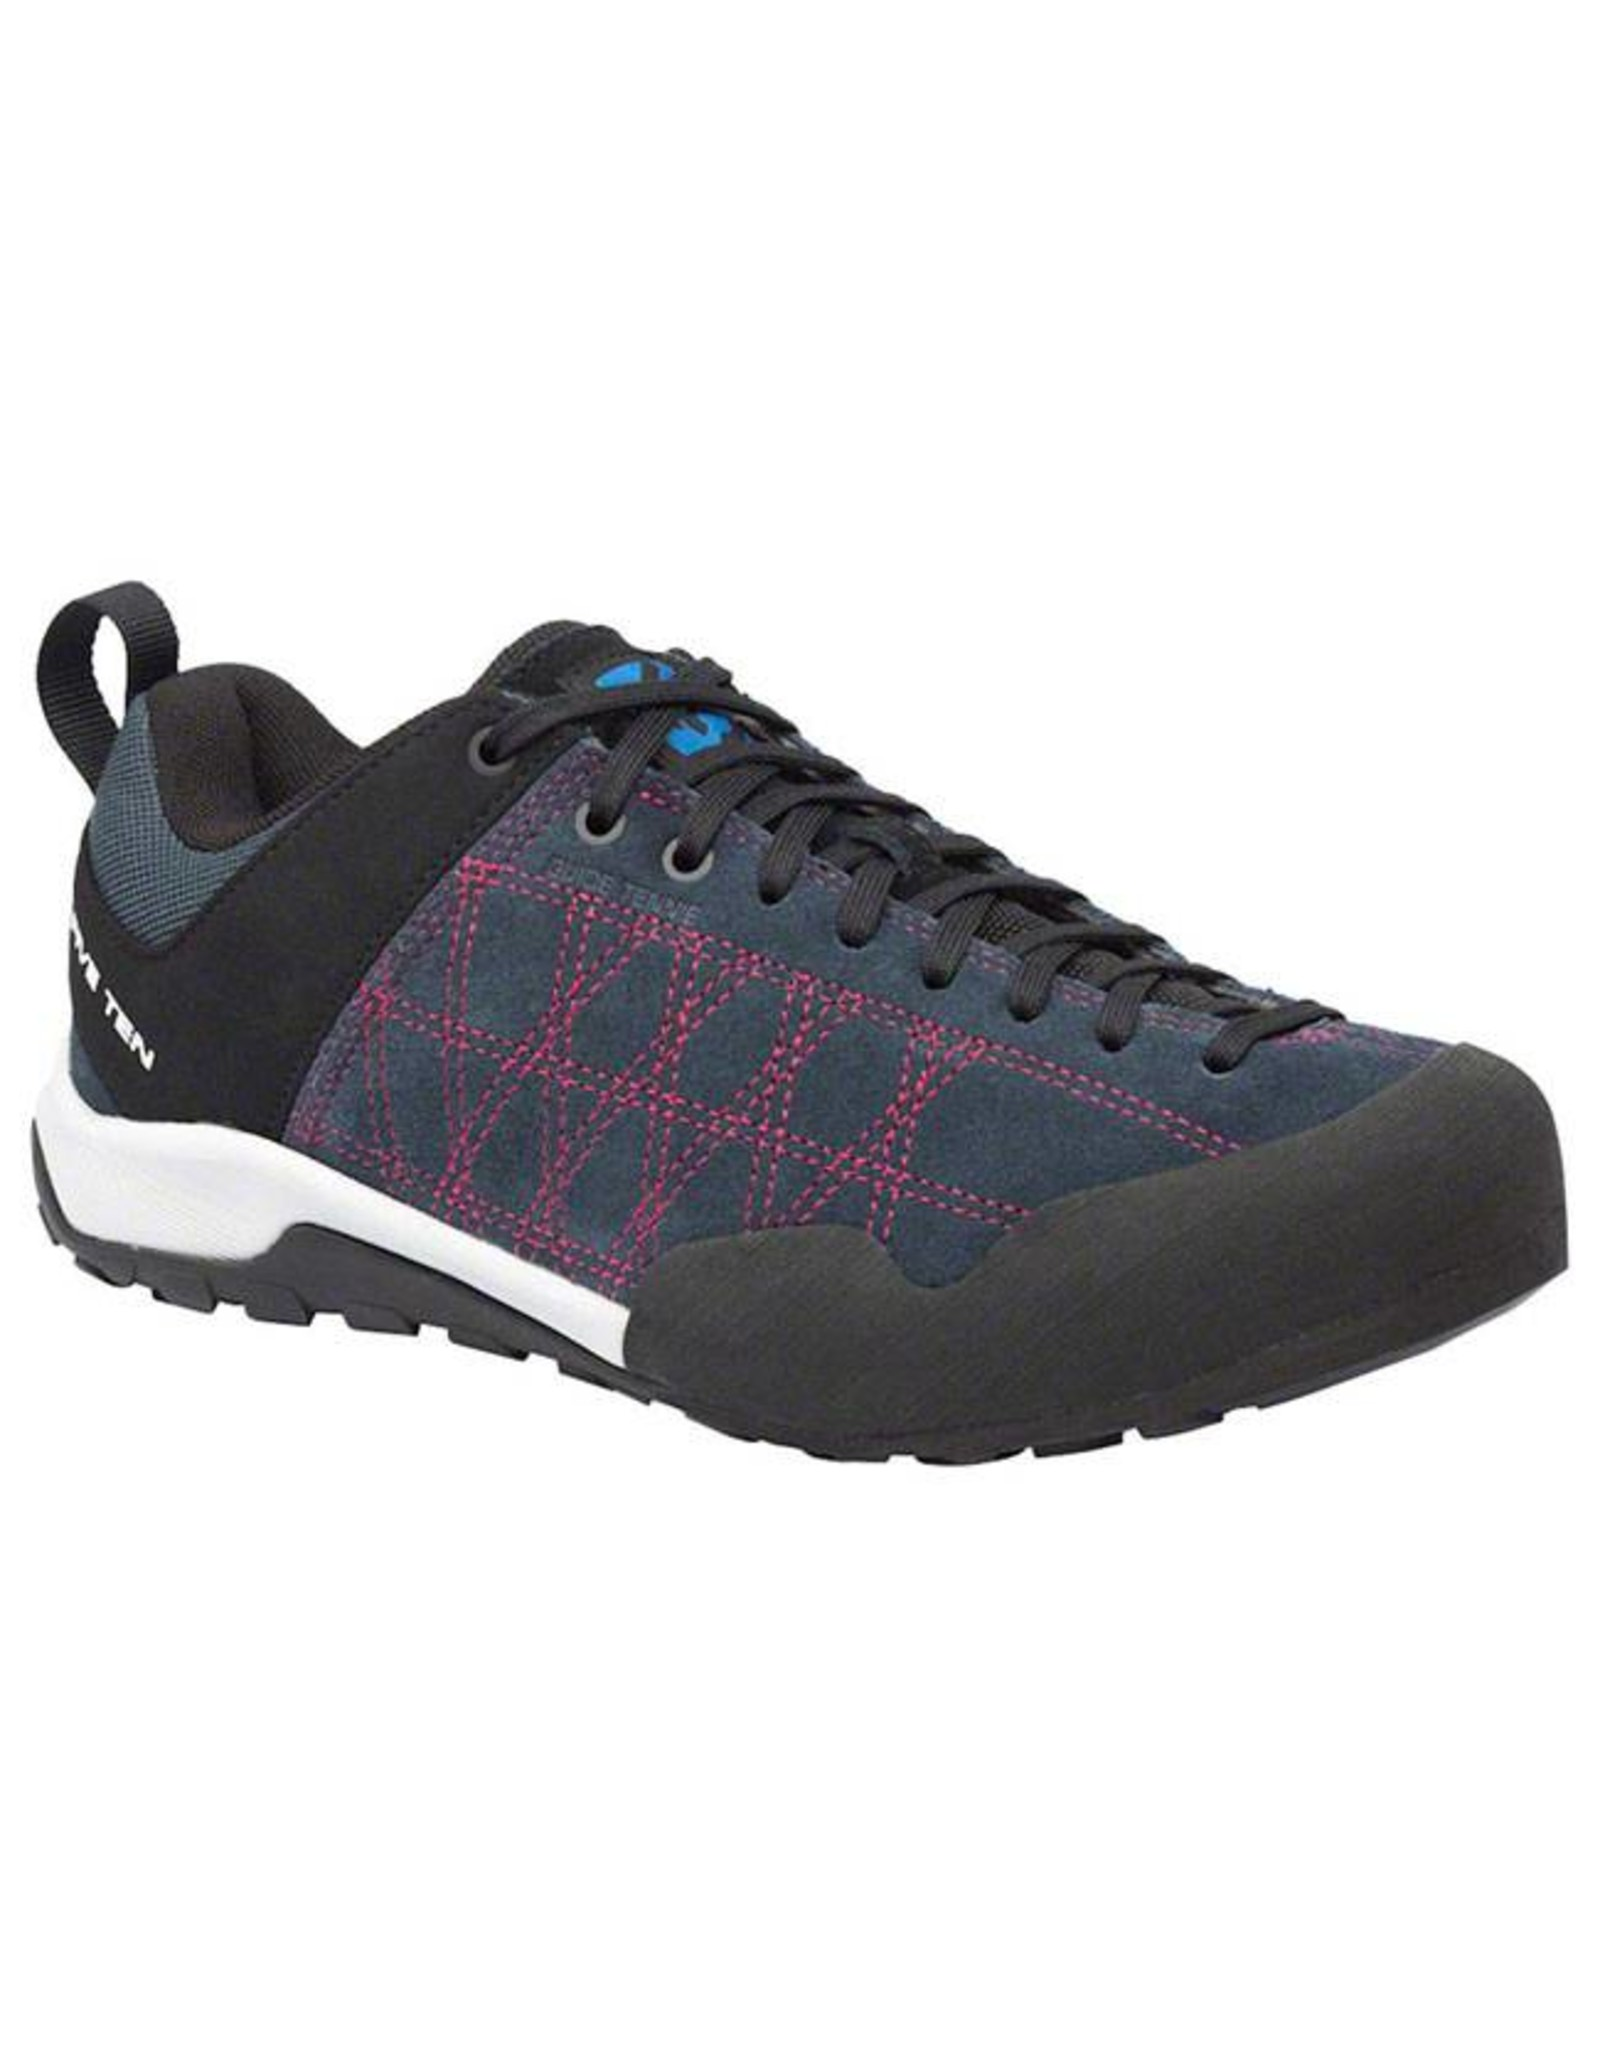 Five Ten Five Ten Guide Tennie Women's Approach Shoe: Gray/Fuchsia 8